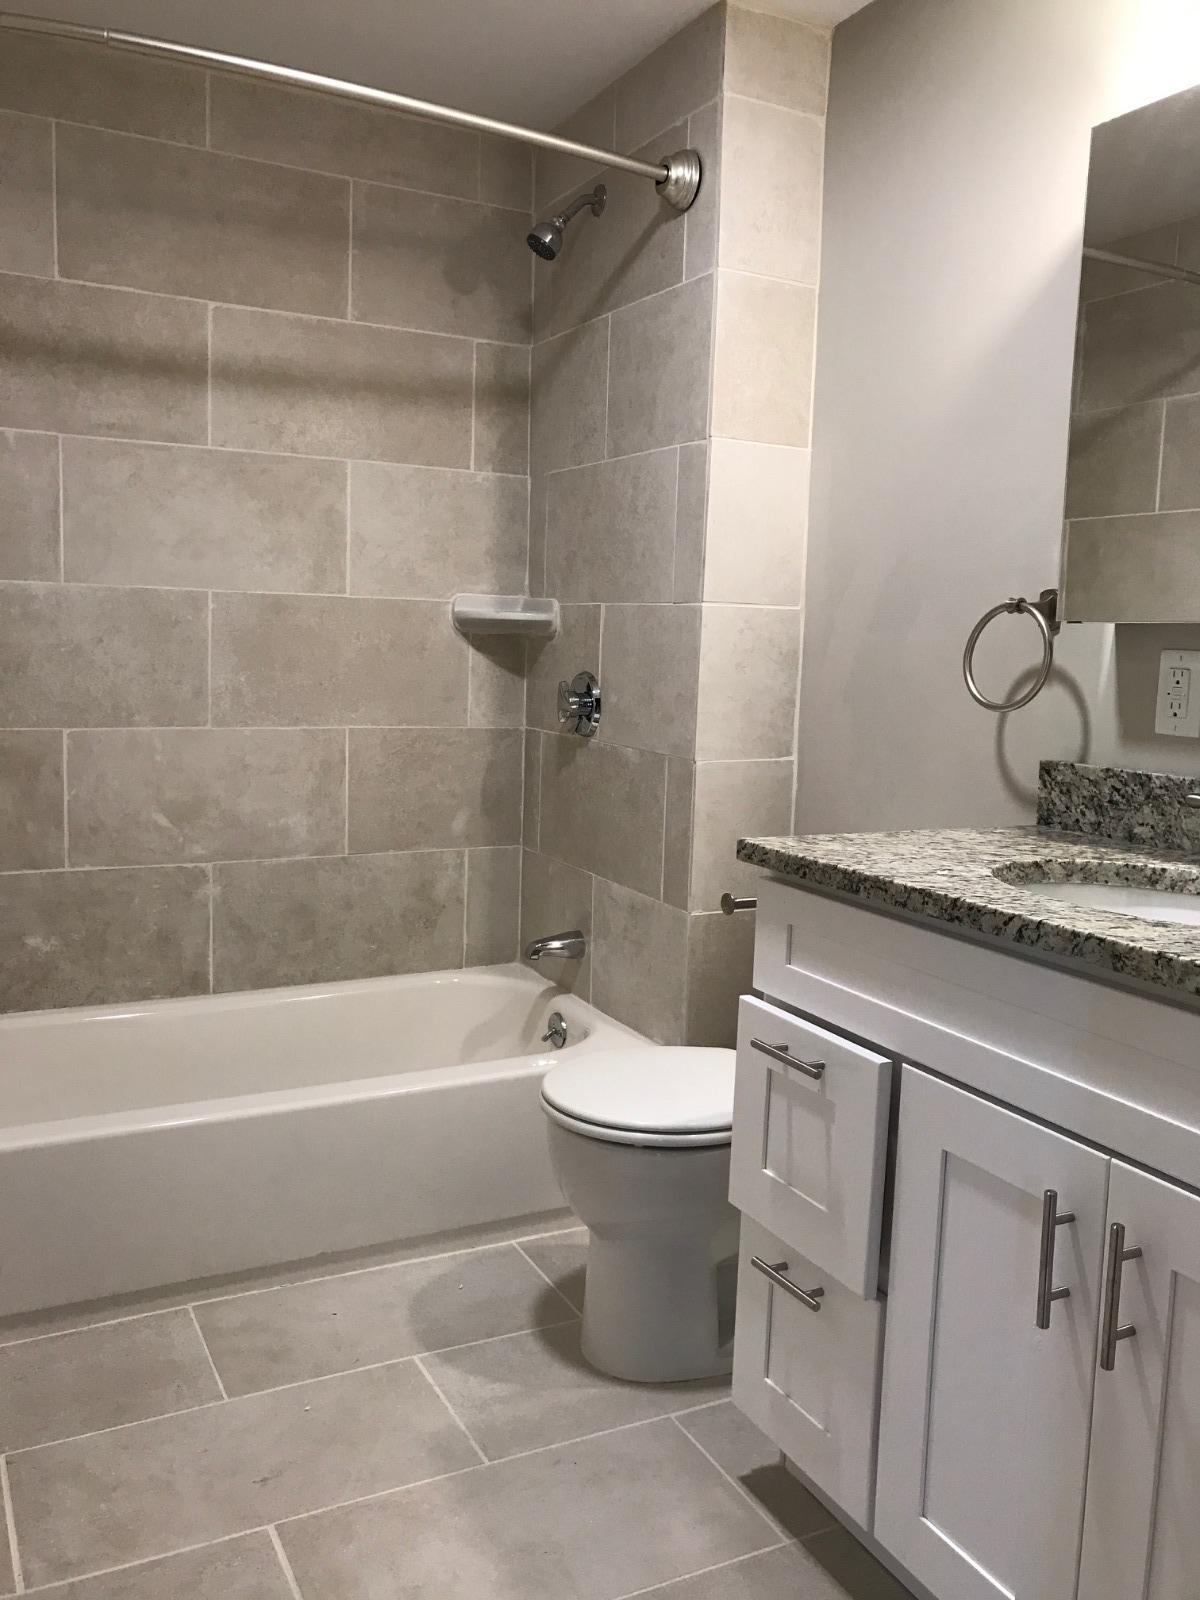 Brand New Porter Sq 2BR for 12/15 - Total Luxury - Laundry in UNIT!